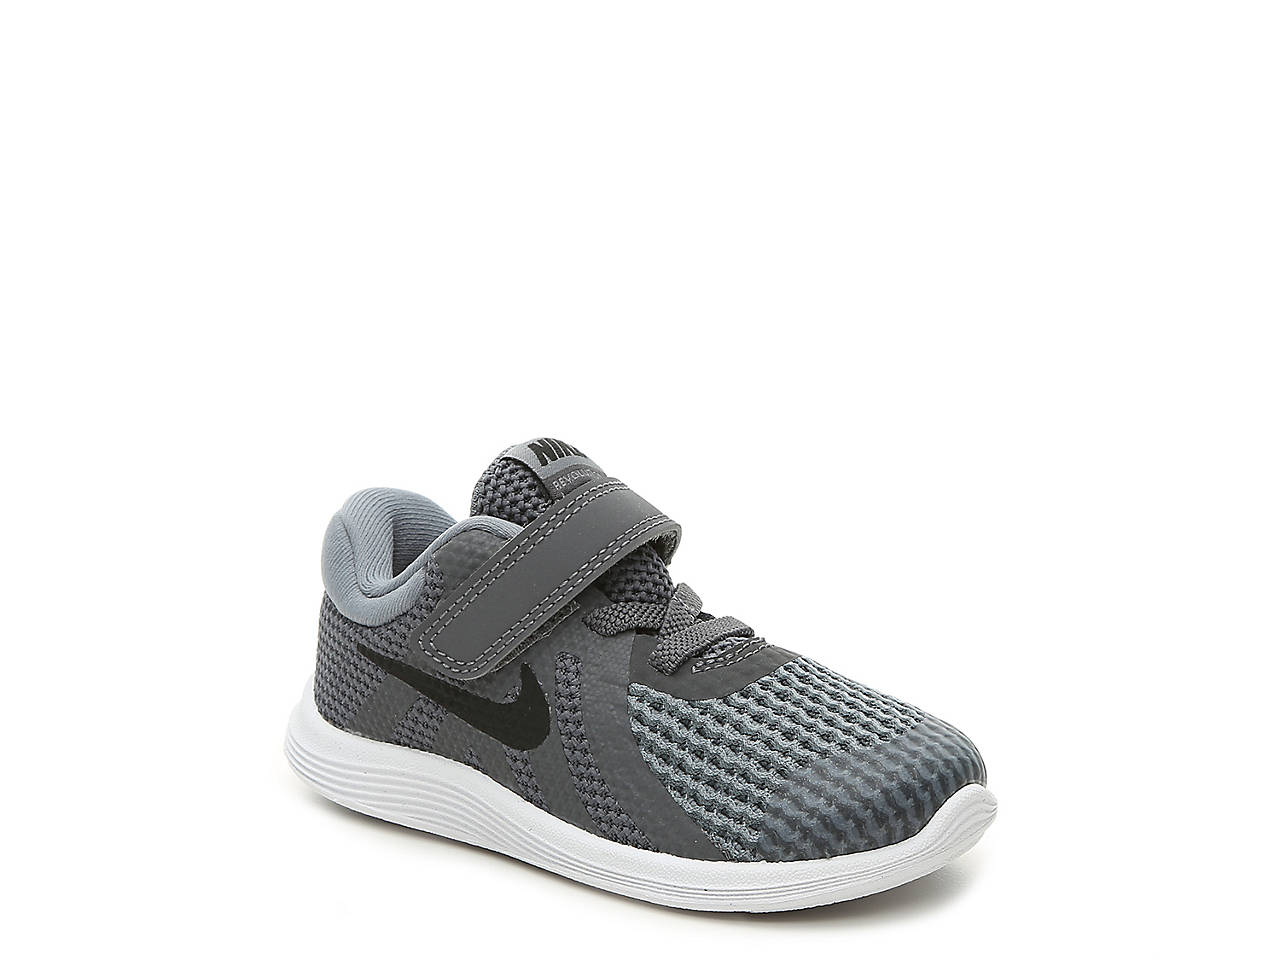 3c603aac5829b Nike Revolution 4 Toddler Running Shoe Kids Shoes